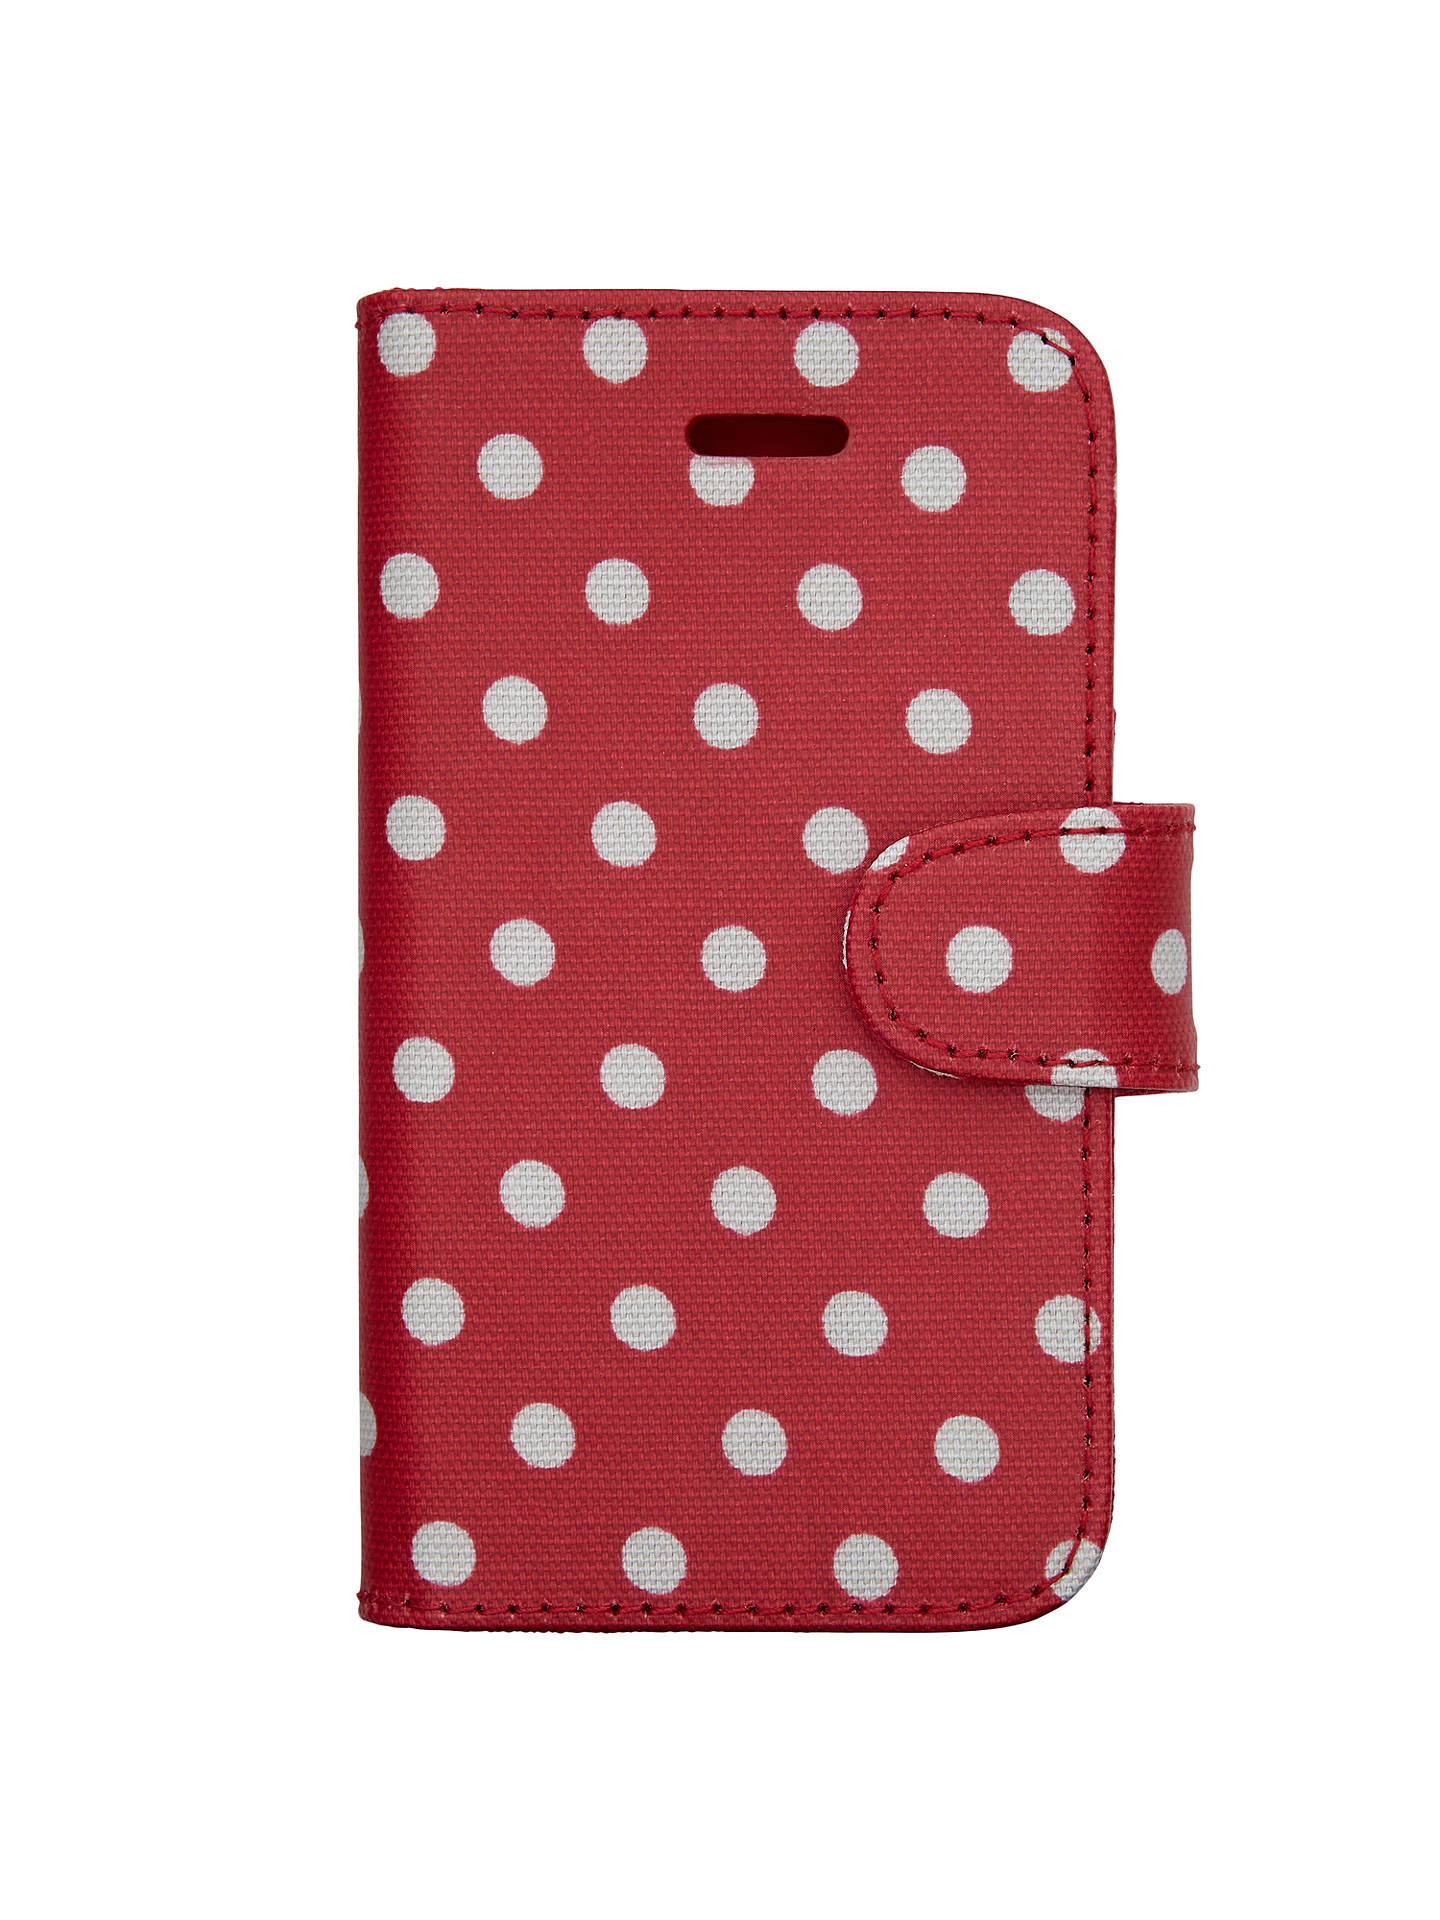 premium selection b3df0 7c55d Cath Kidston Spotted Print iPhone 5 Case, Cranberry at John Lewis ...